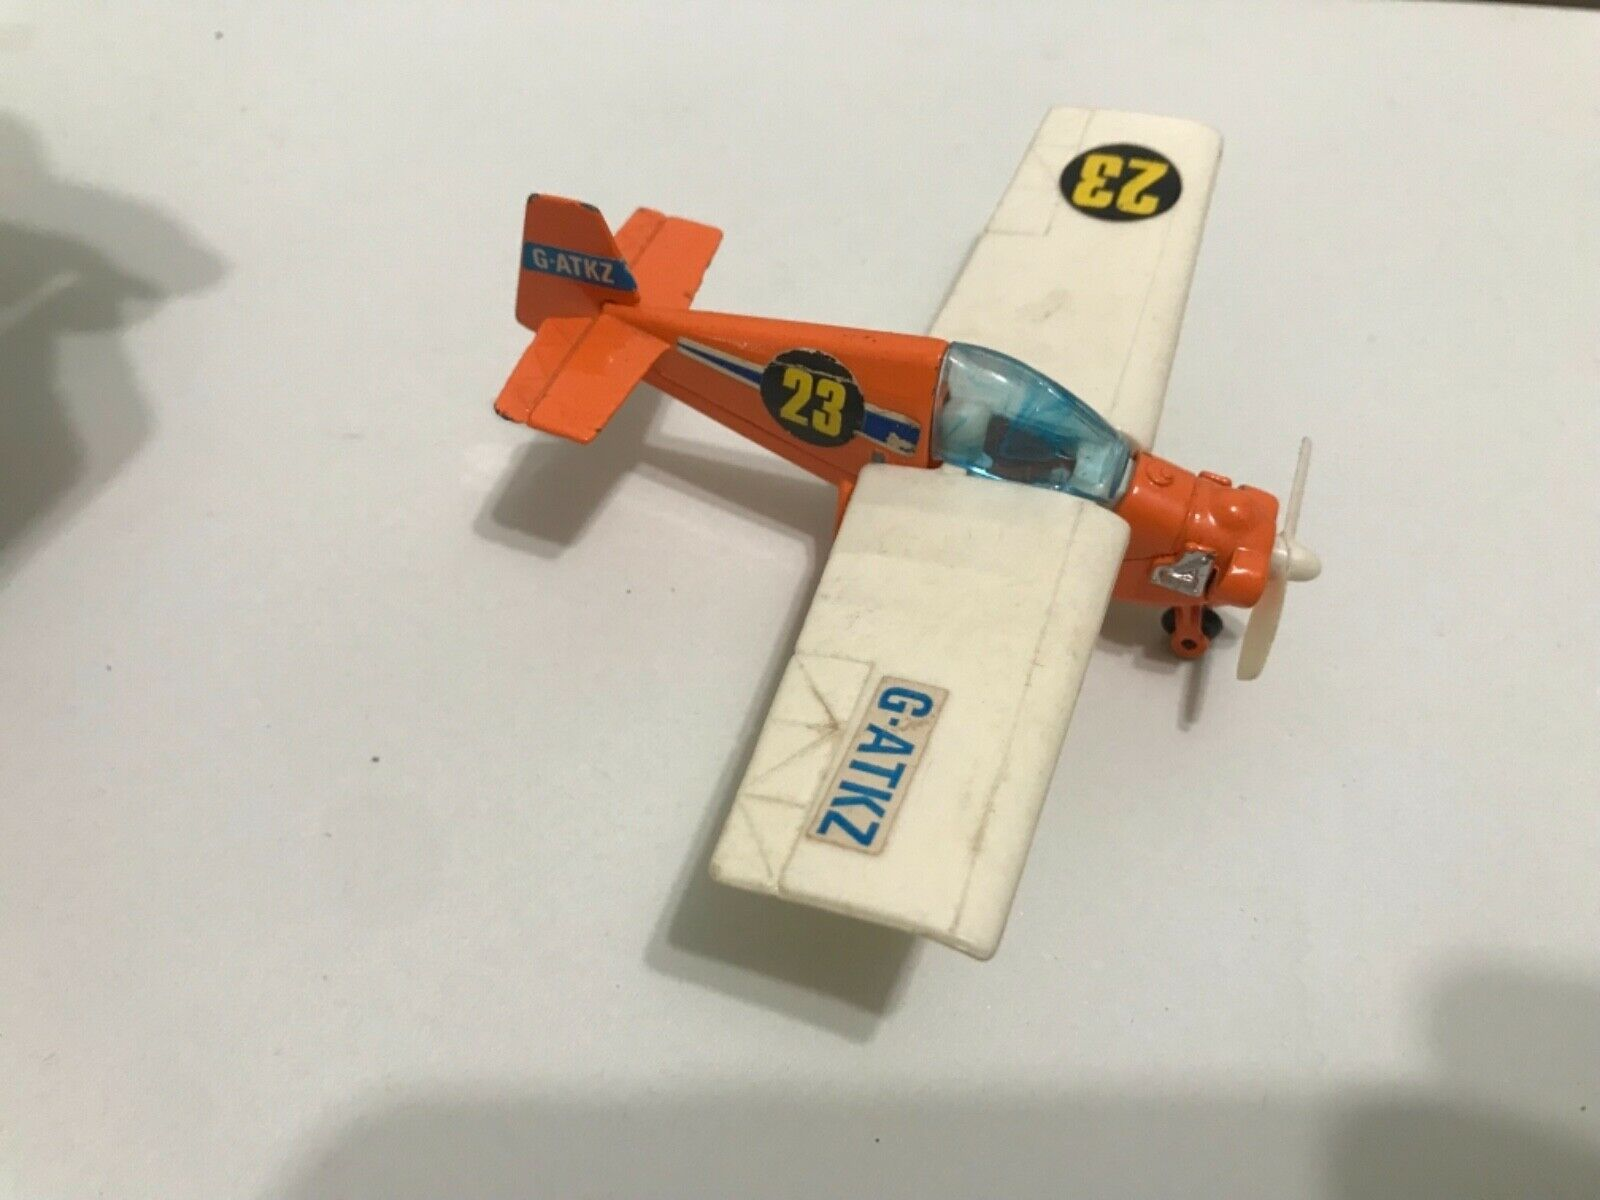 Vintage 1969 Corgi airplane nipper mark